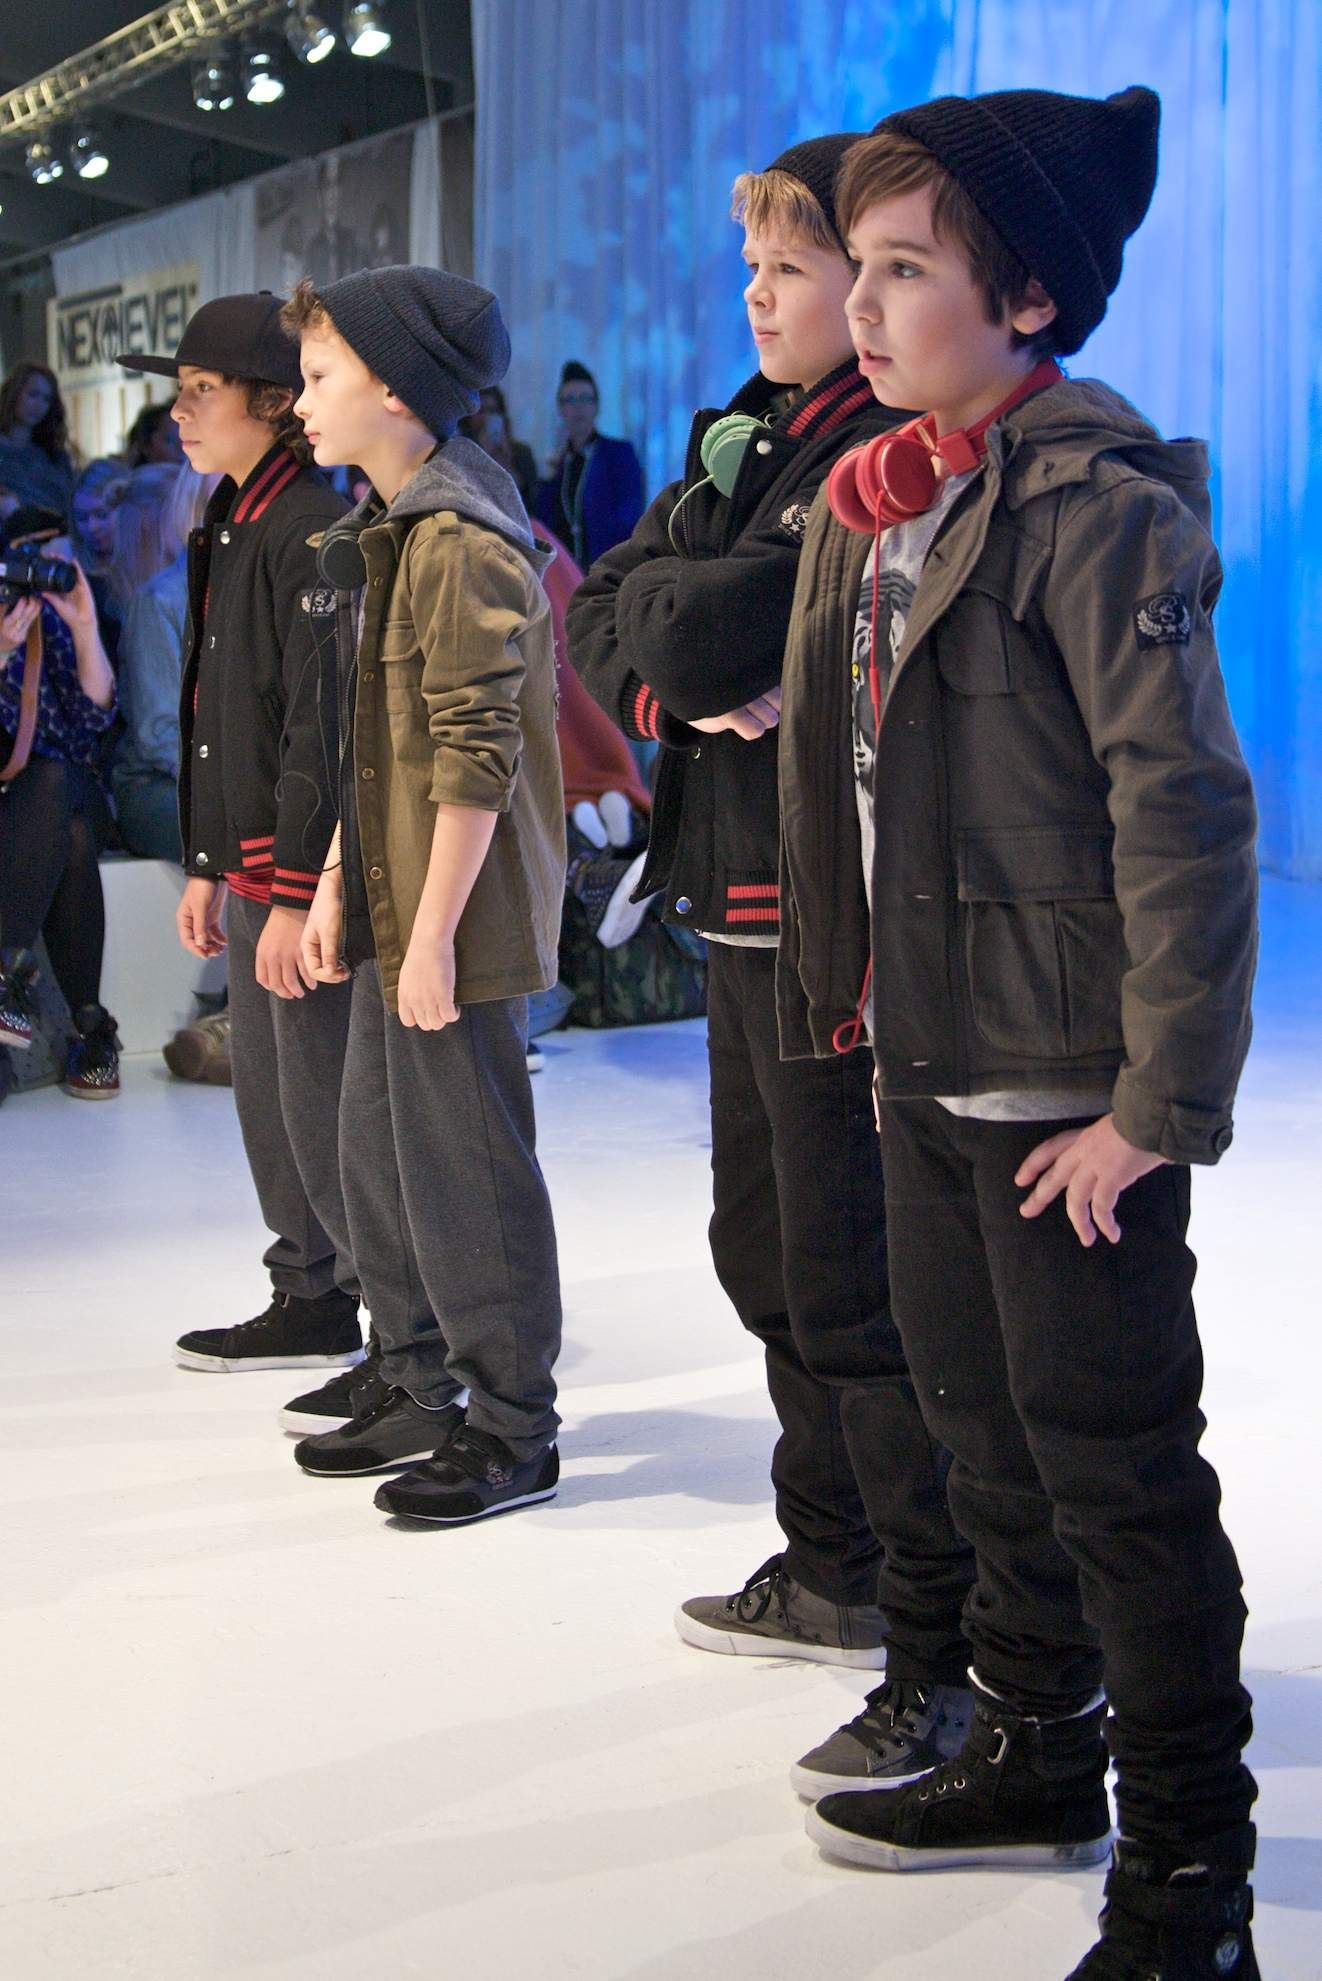 boyswear at petit by sofie schnoor focuses on military details and